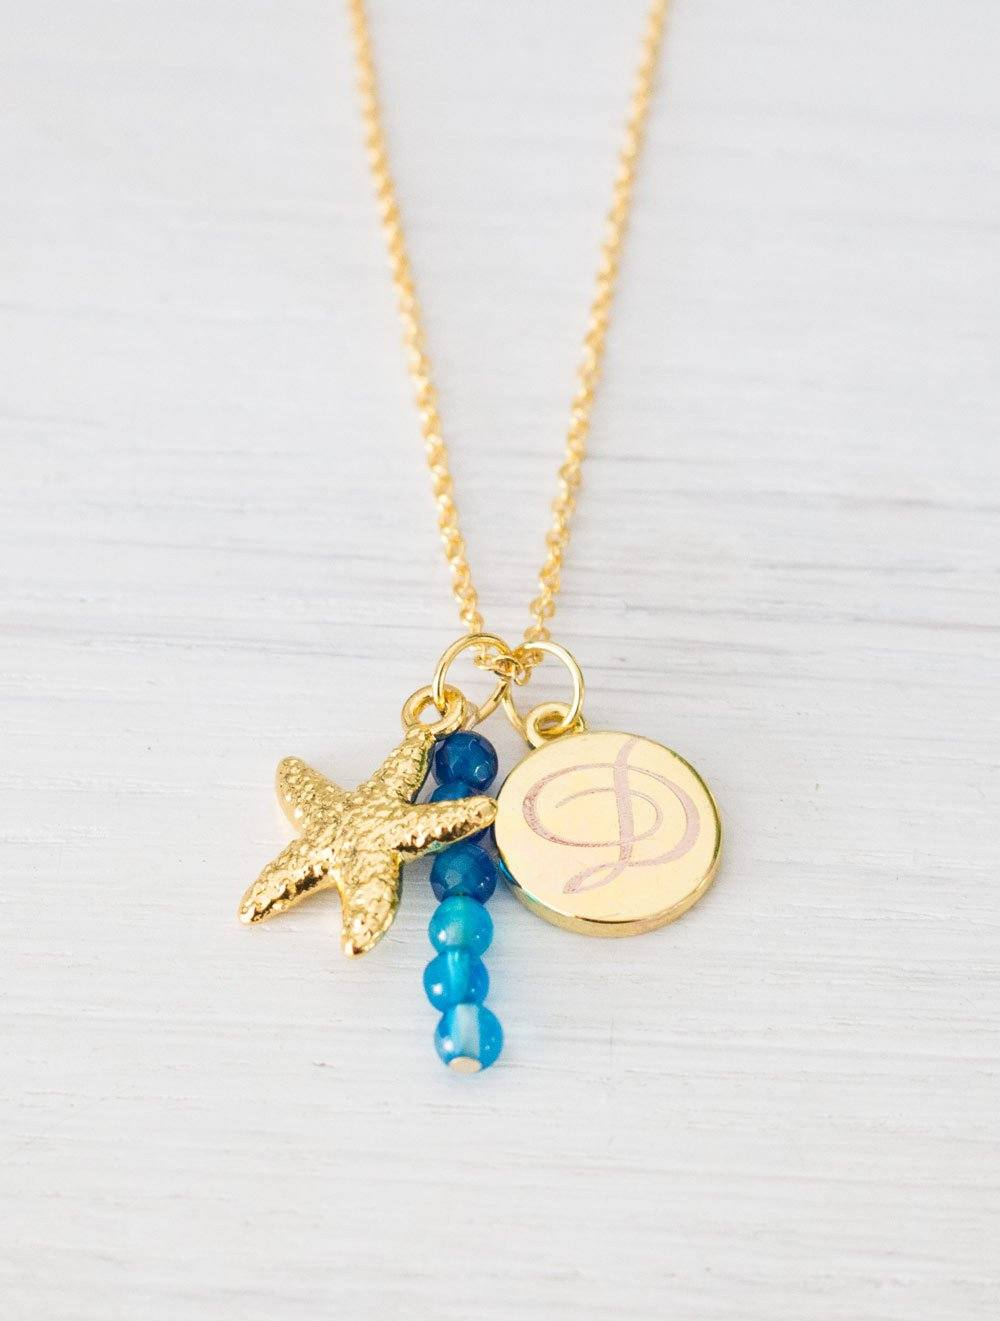 Personalized Gold Starfish Necklace, Blue Agate Stone Beads, Initial Monogram Necklace - product_type] - Beautiz